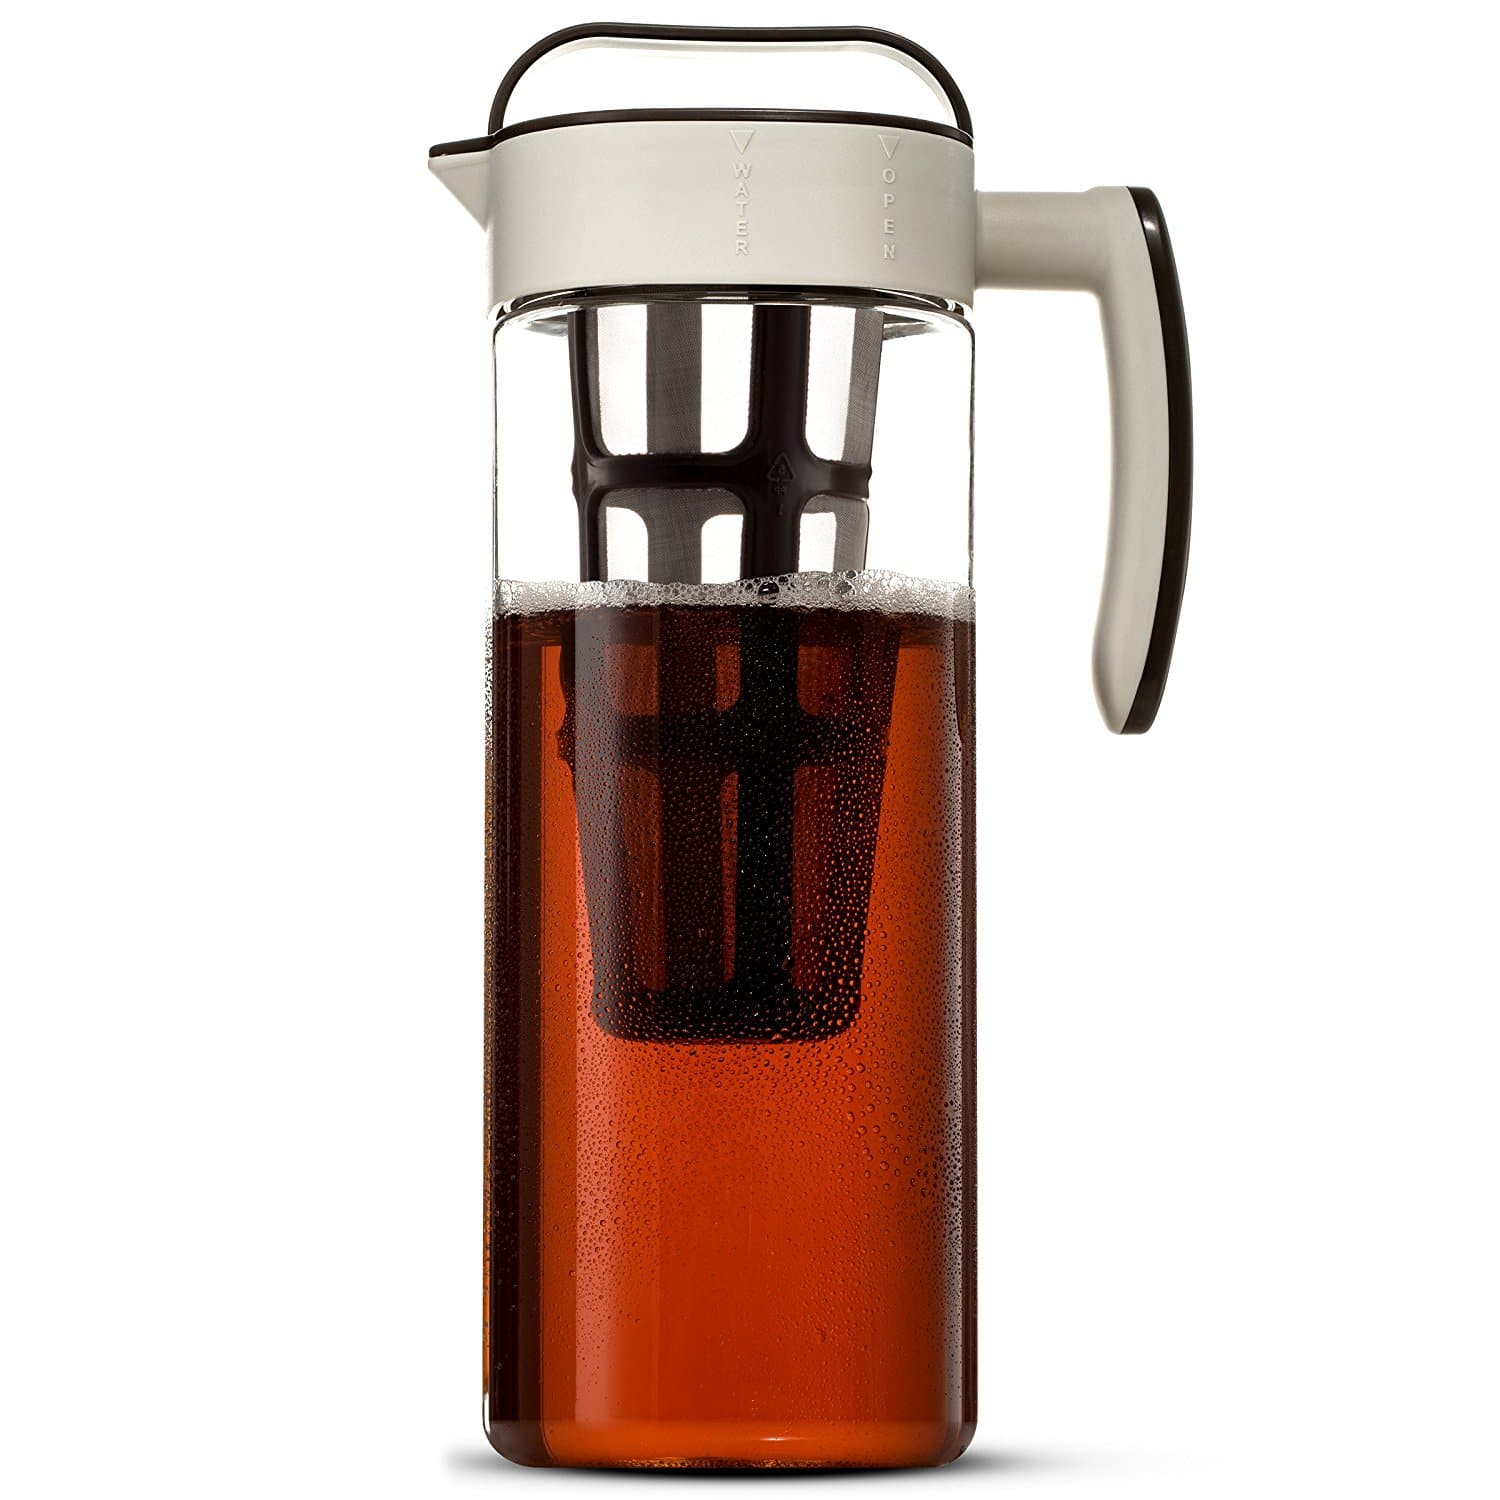 ​Komax Large Cold Brew Coffee Maker 2 Quart (8 Cups) Tritan Pitcher